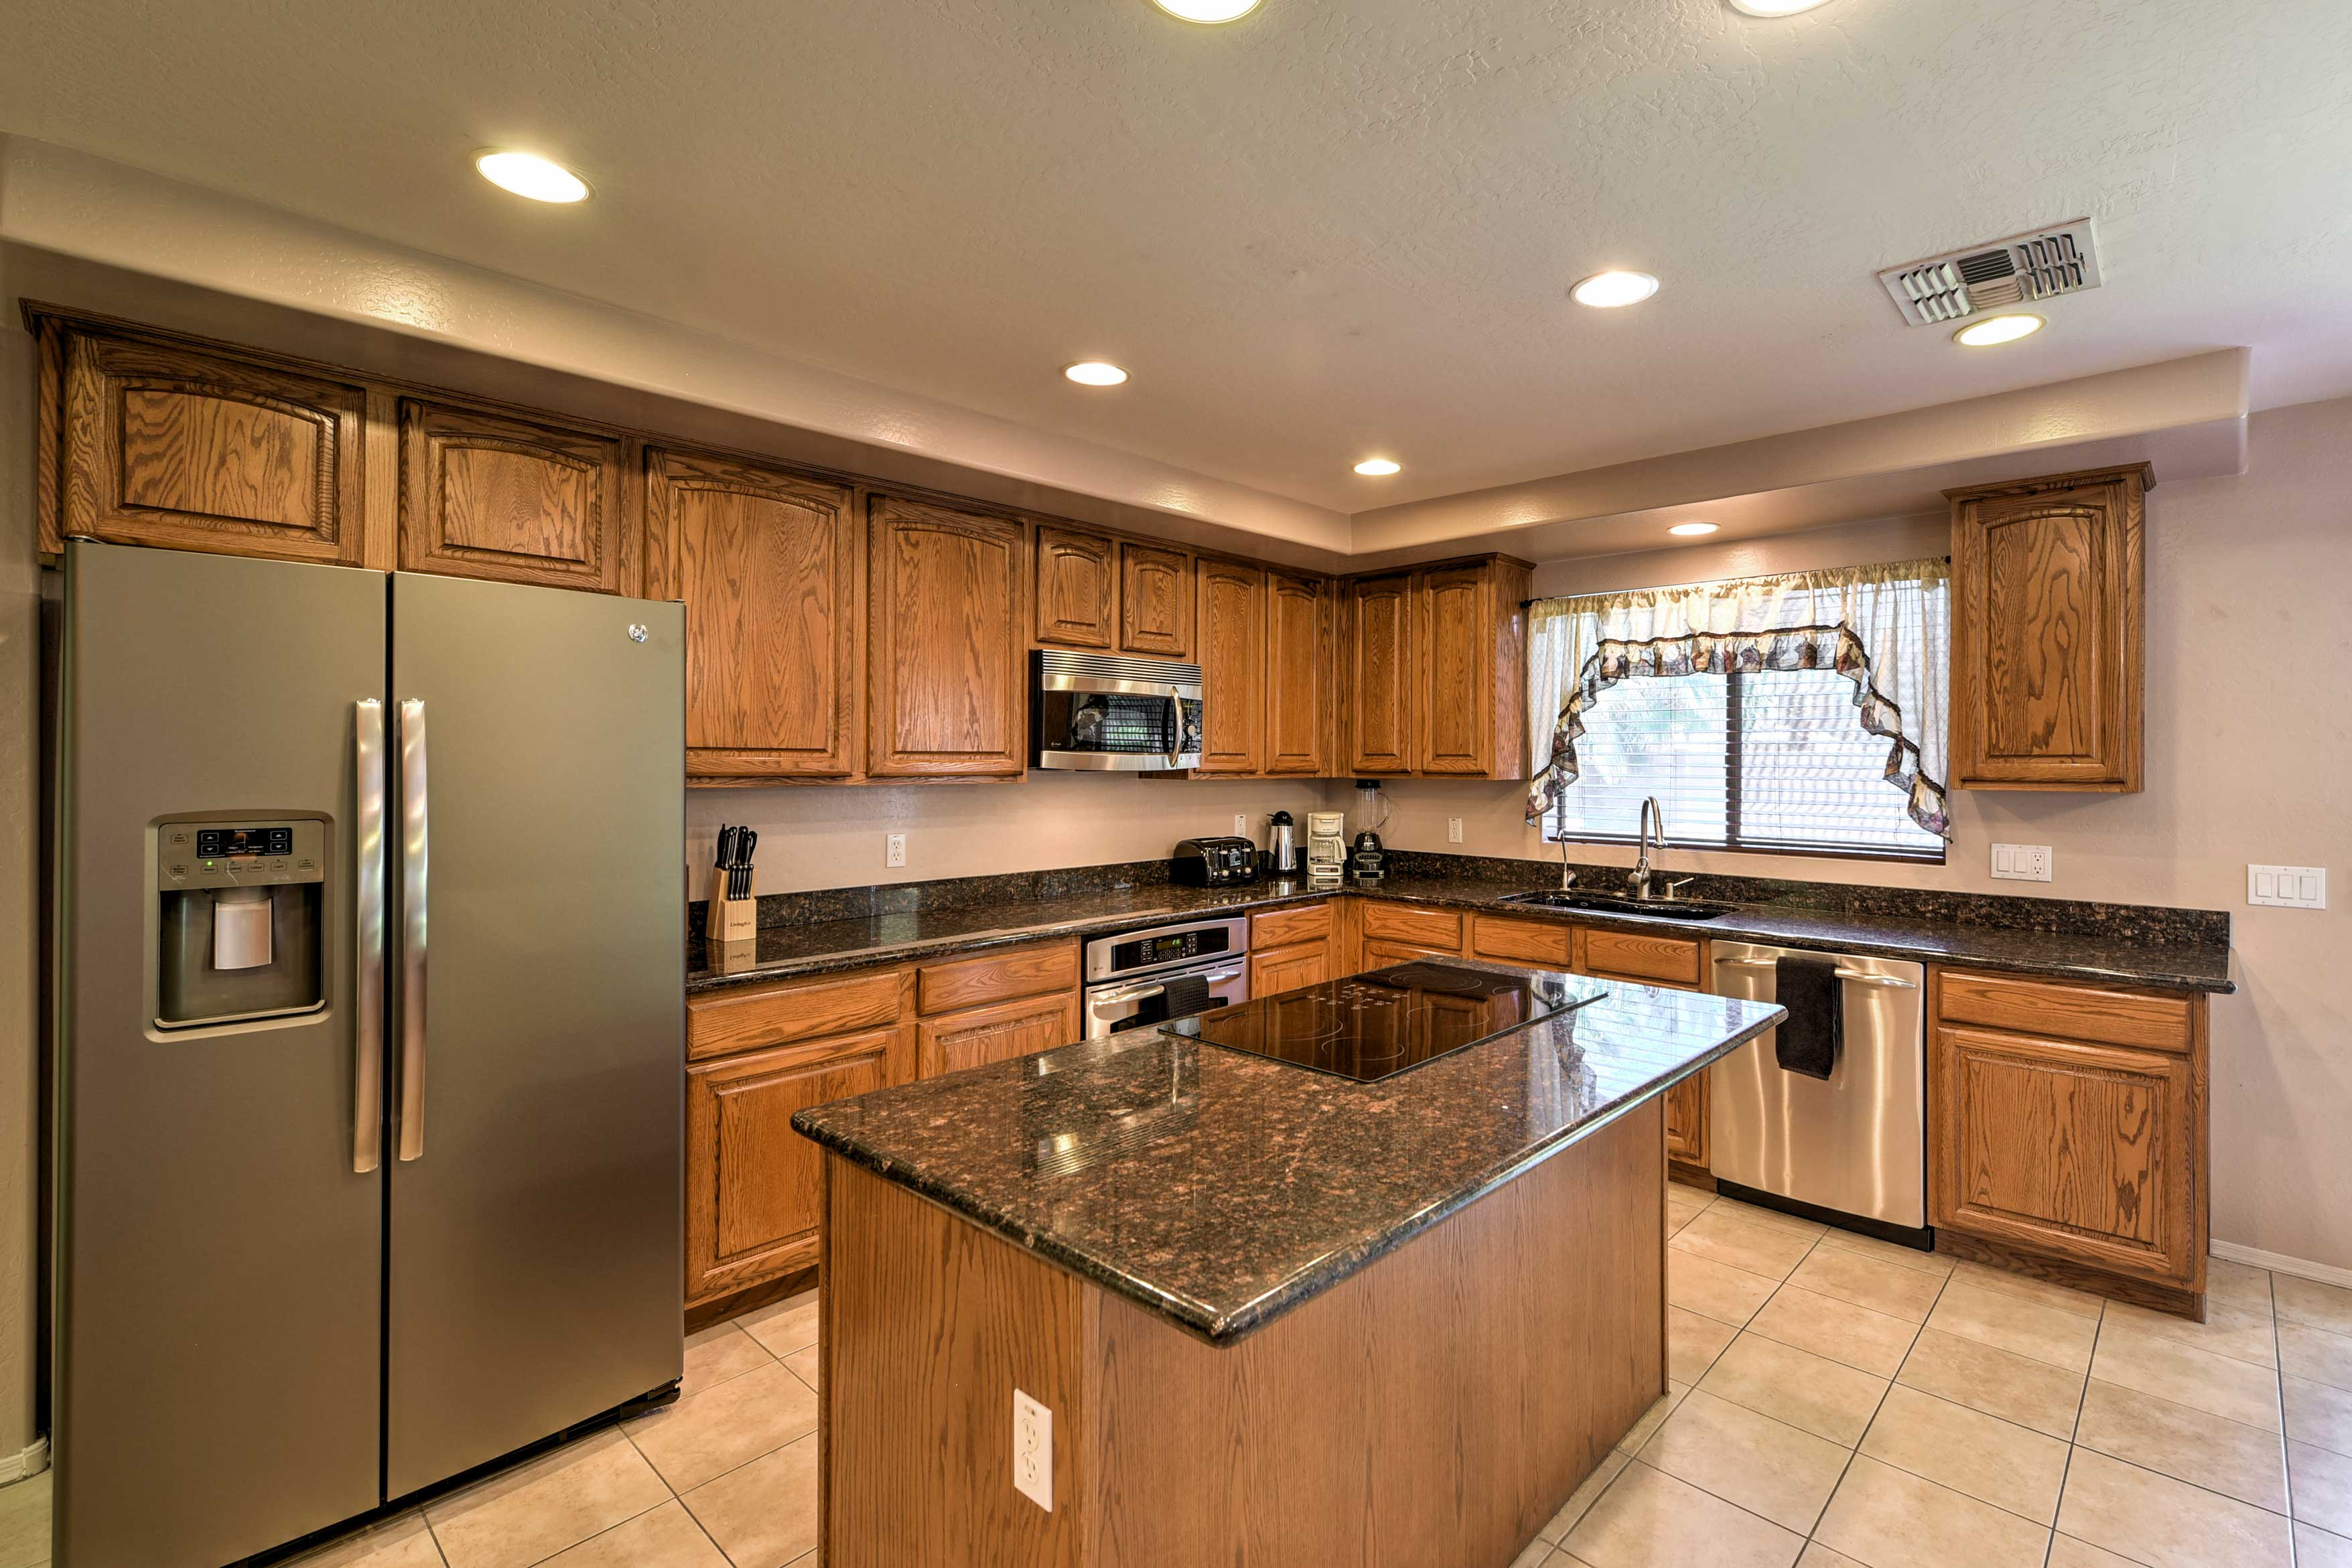 Whip up delicious masterpieces in the fully equipped kitchen.